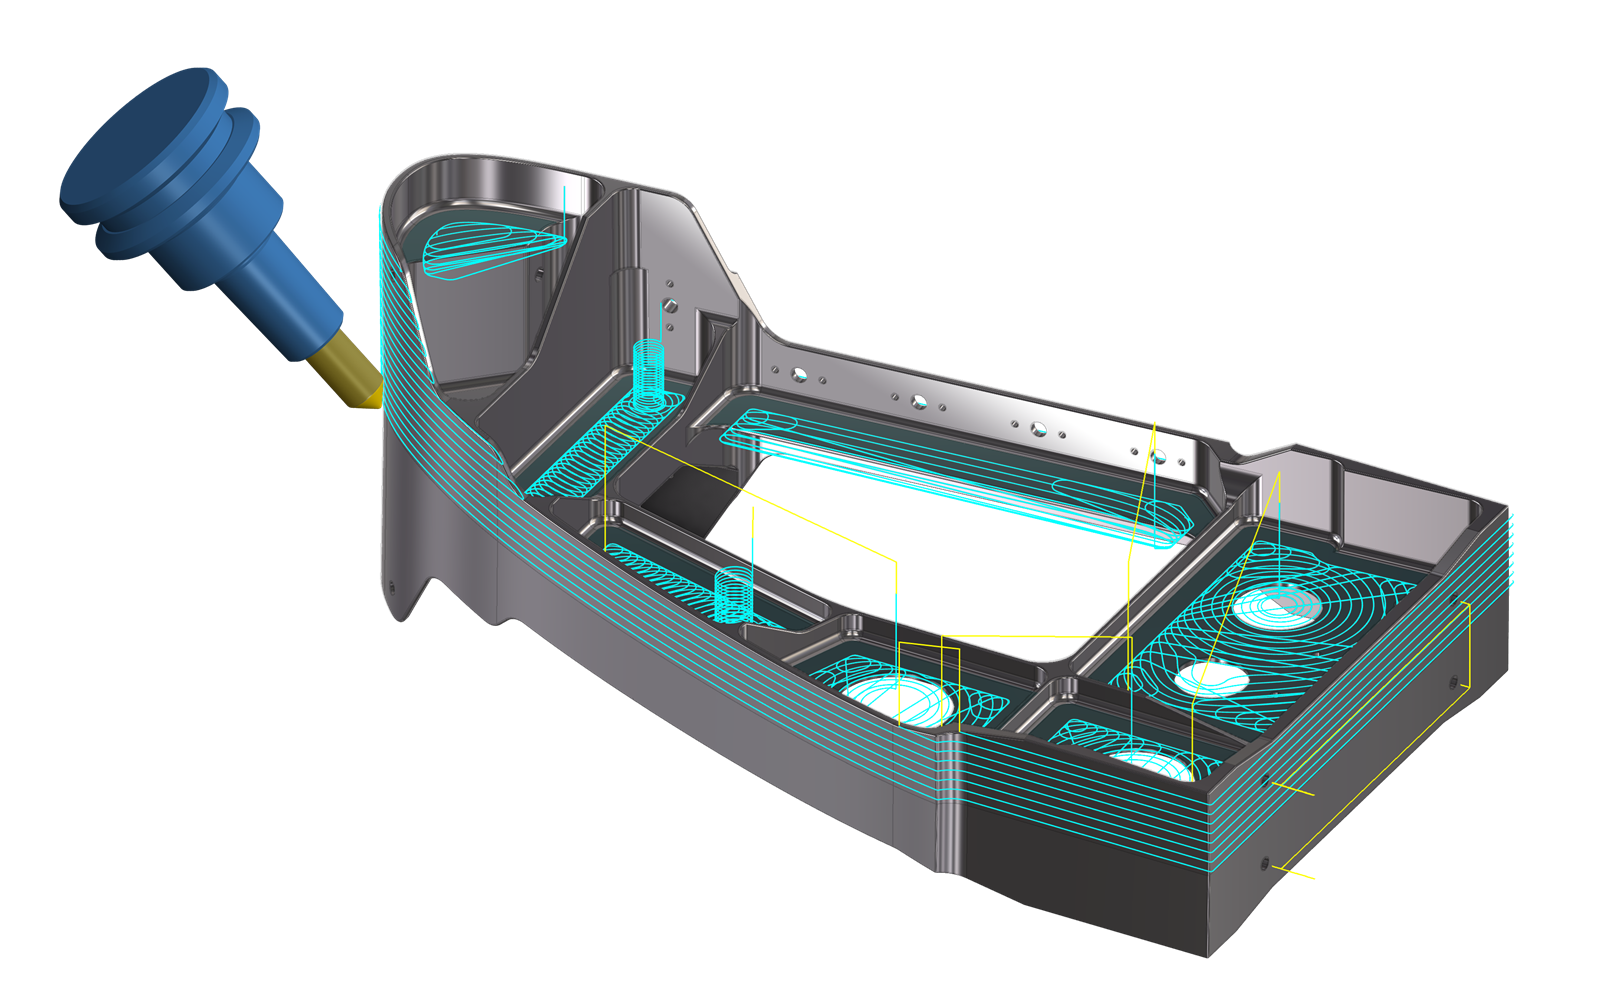 MASTERCAM FOR SOLIDWORKS - MILL 3D